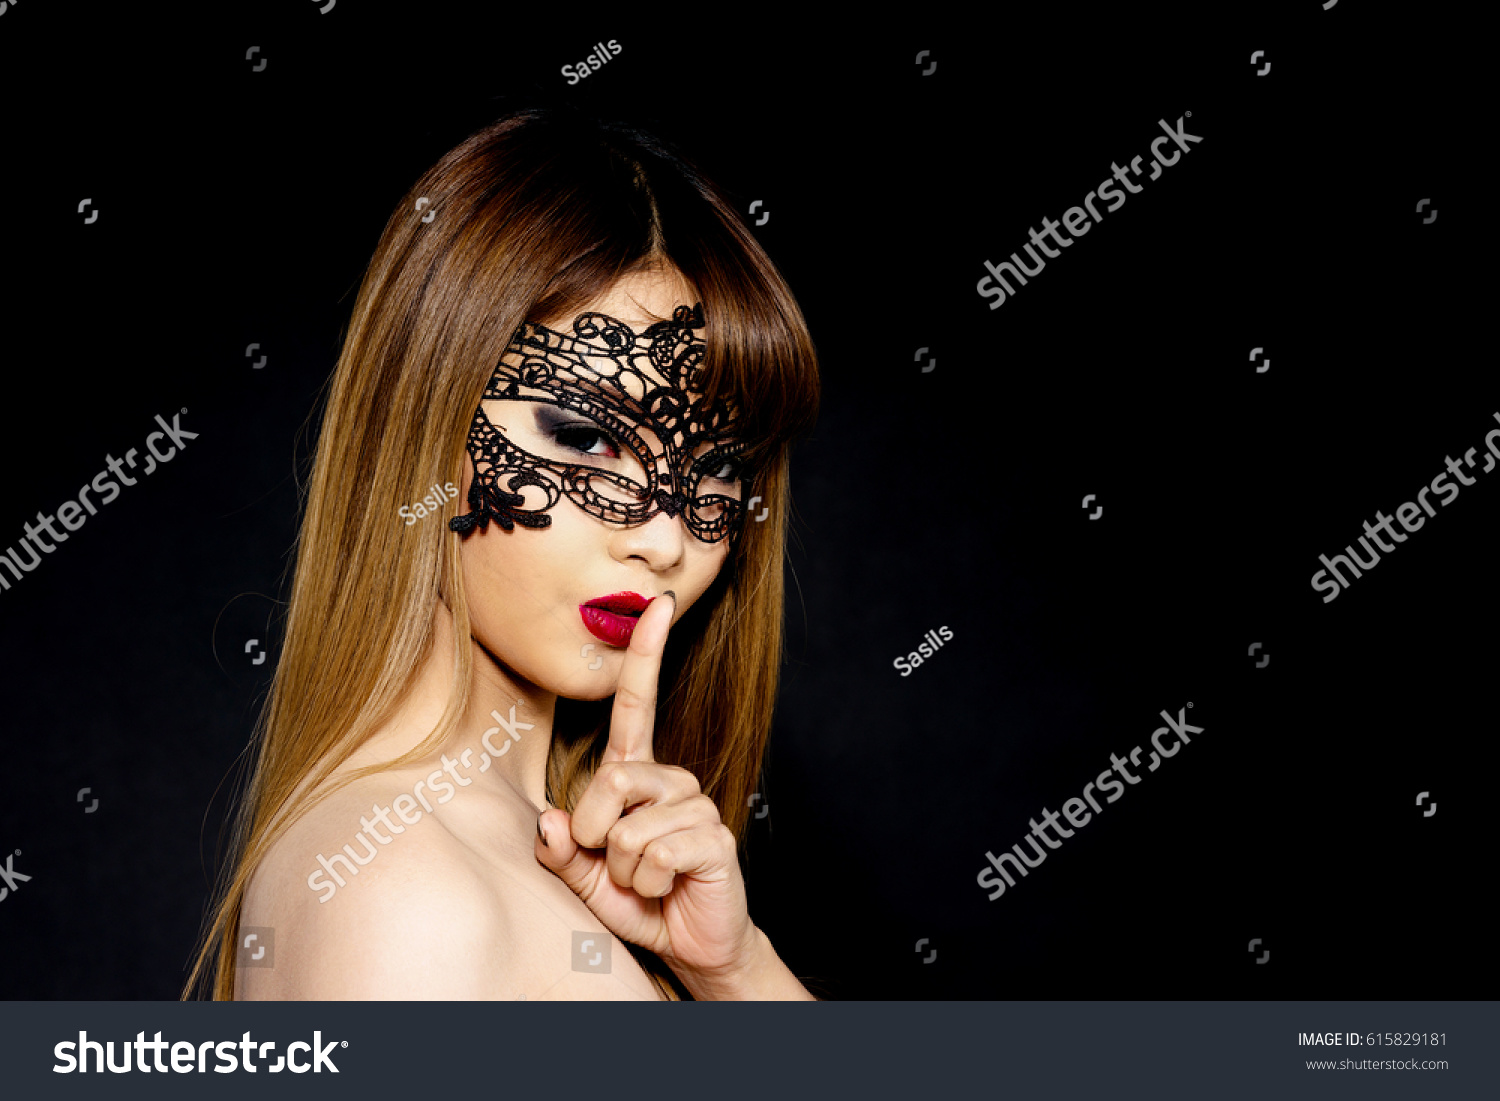 Half naked attractive Asian woman with makeup, long brown hair, black eyes,  lace erotic mask.